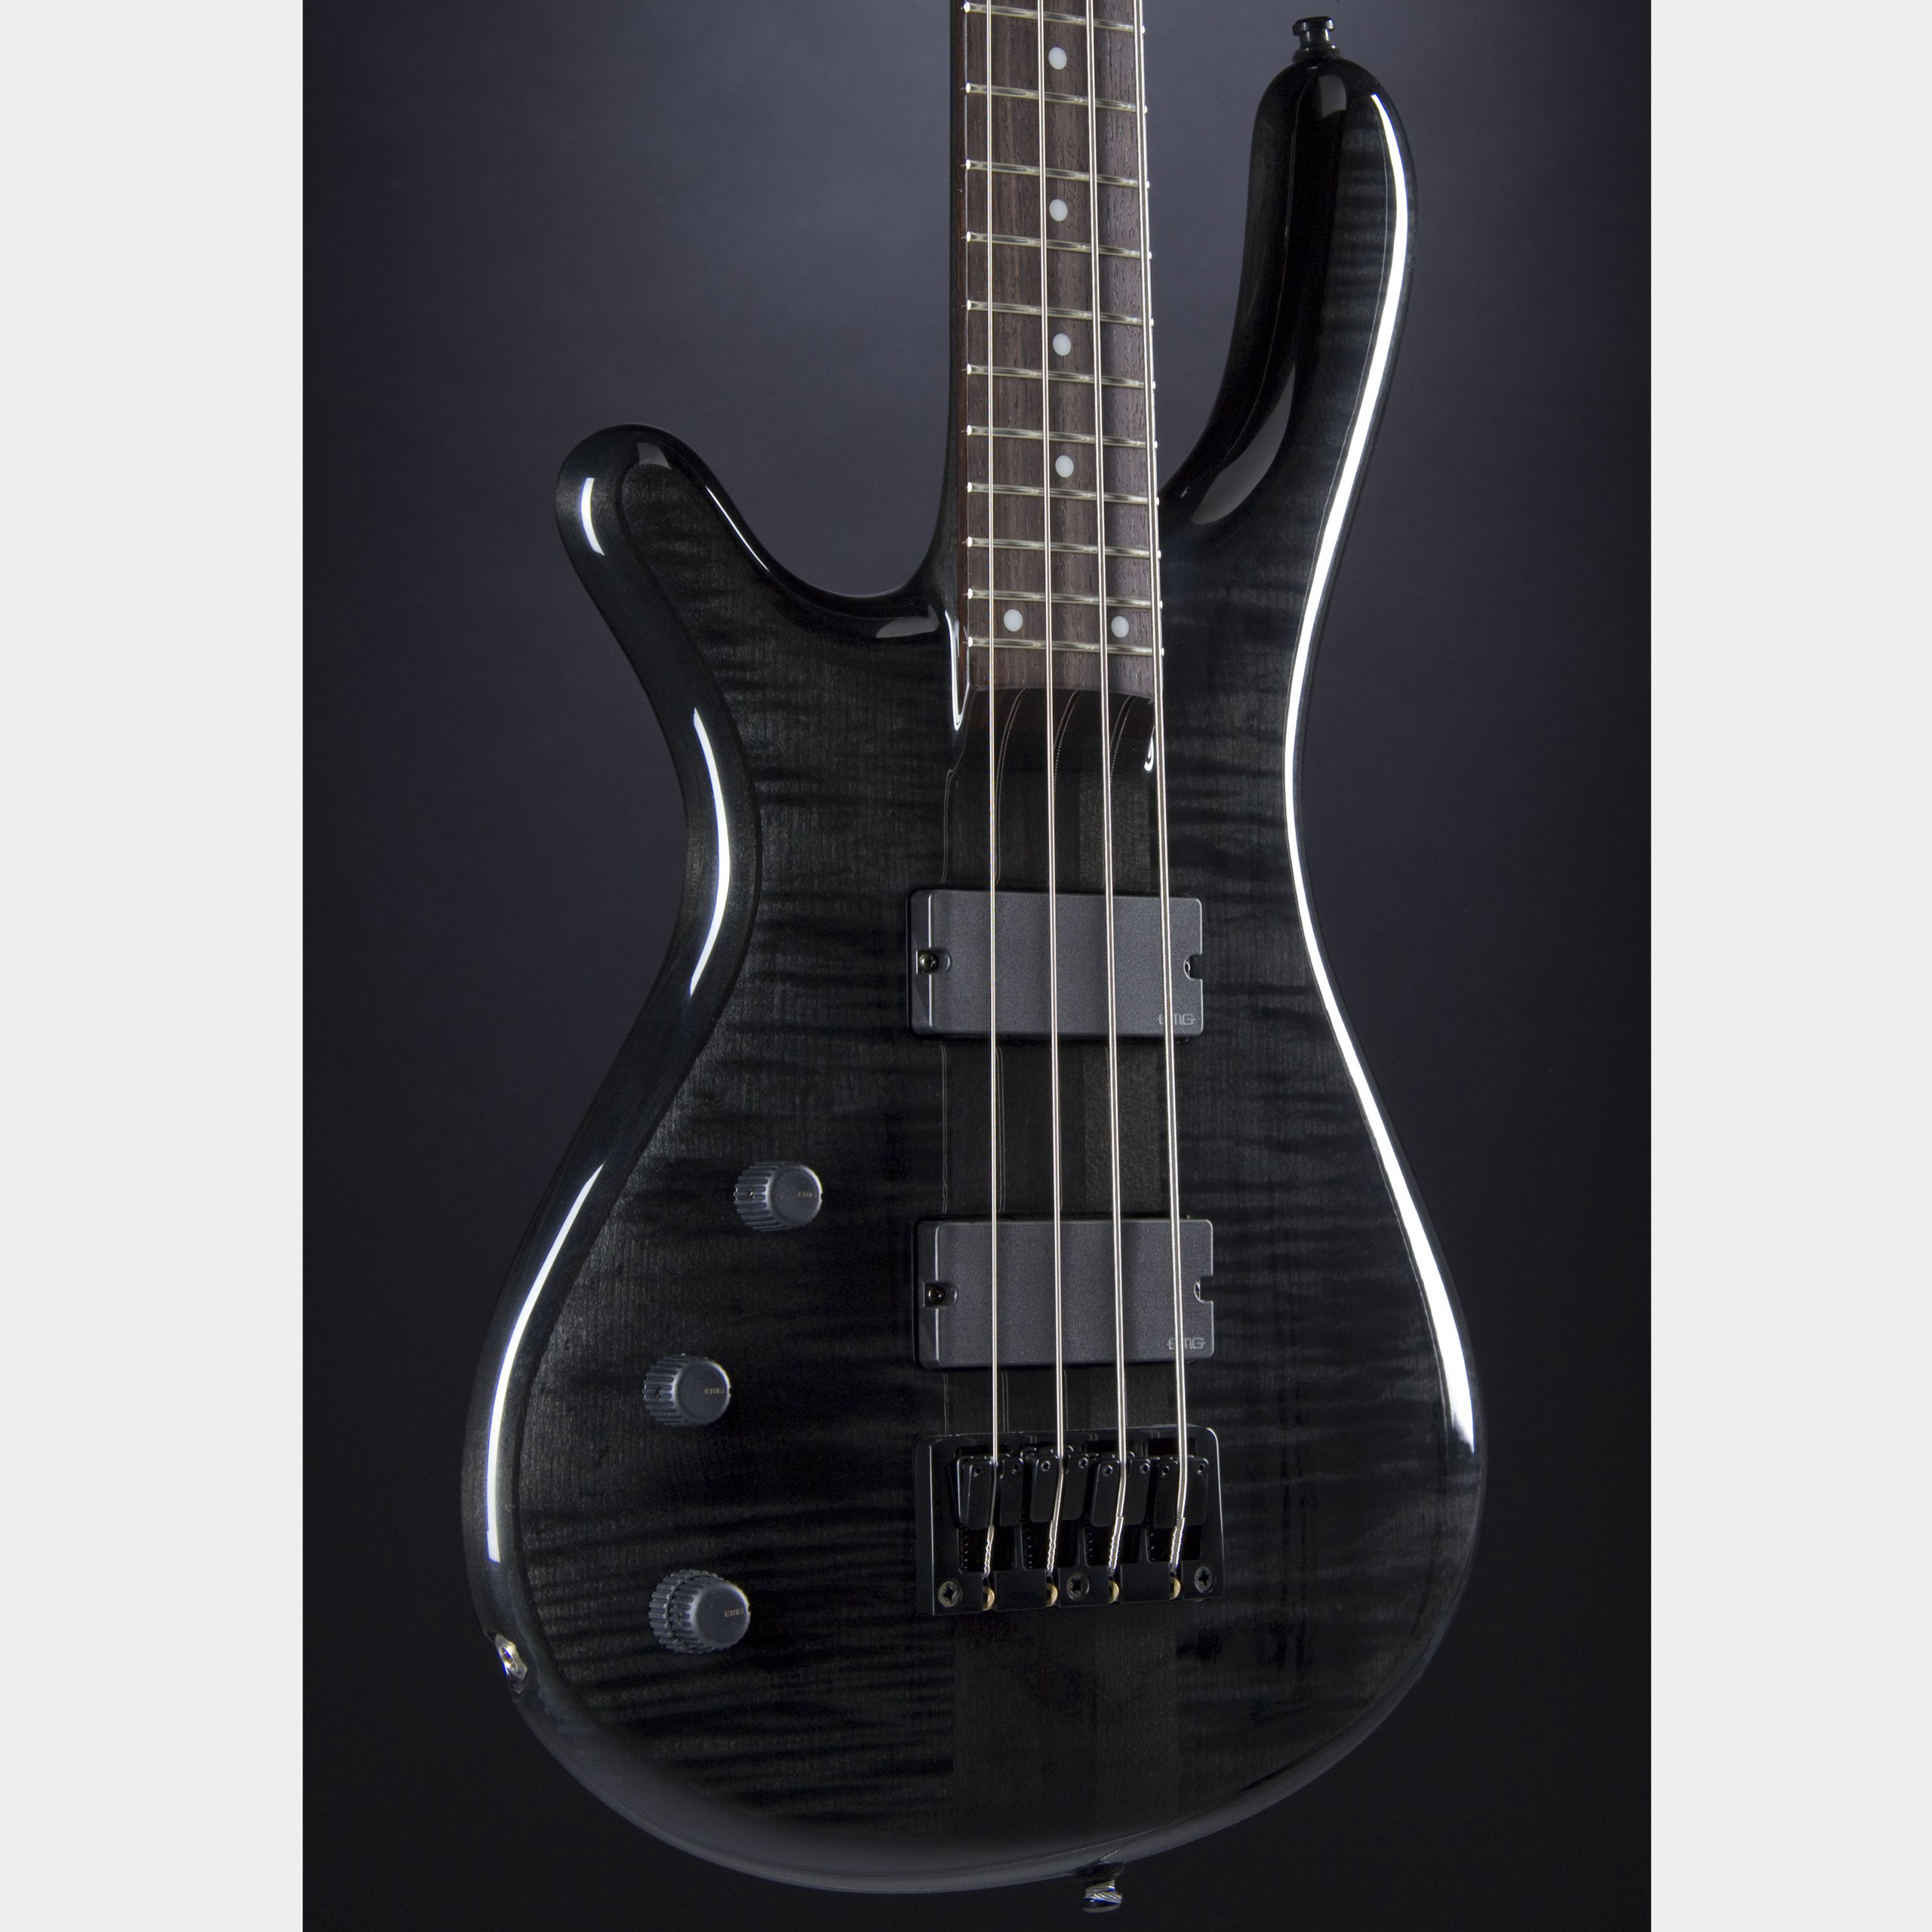 FAME Baphomet 4 NTB LE Lefthand Transparent Black High Gloss Korpus